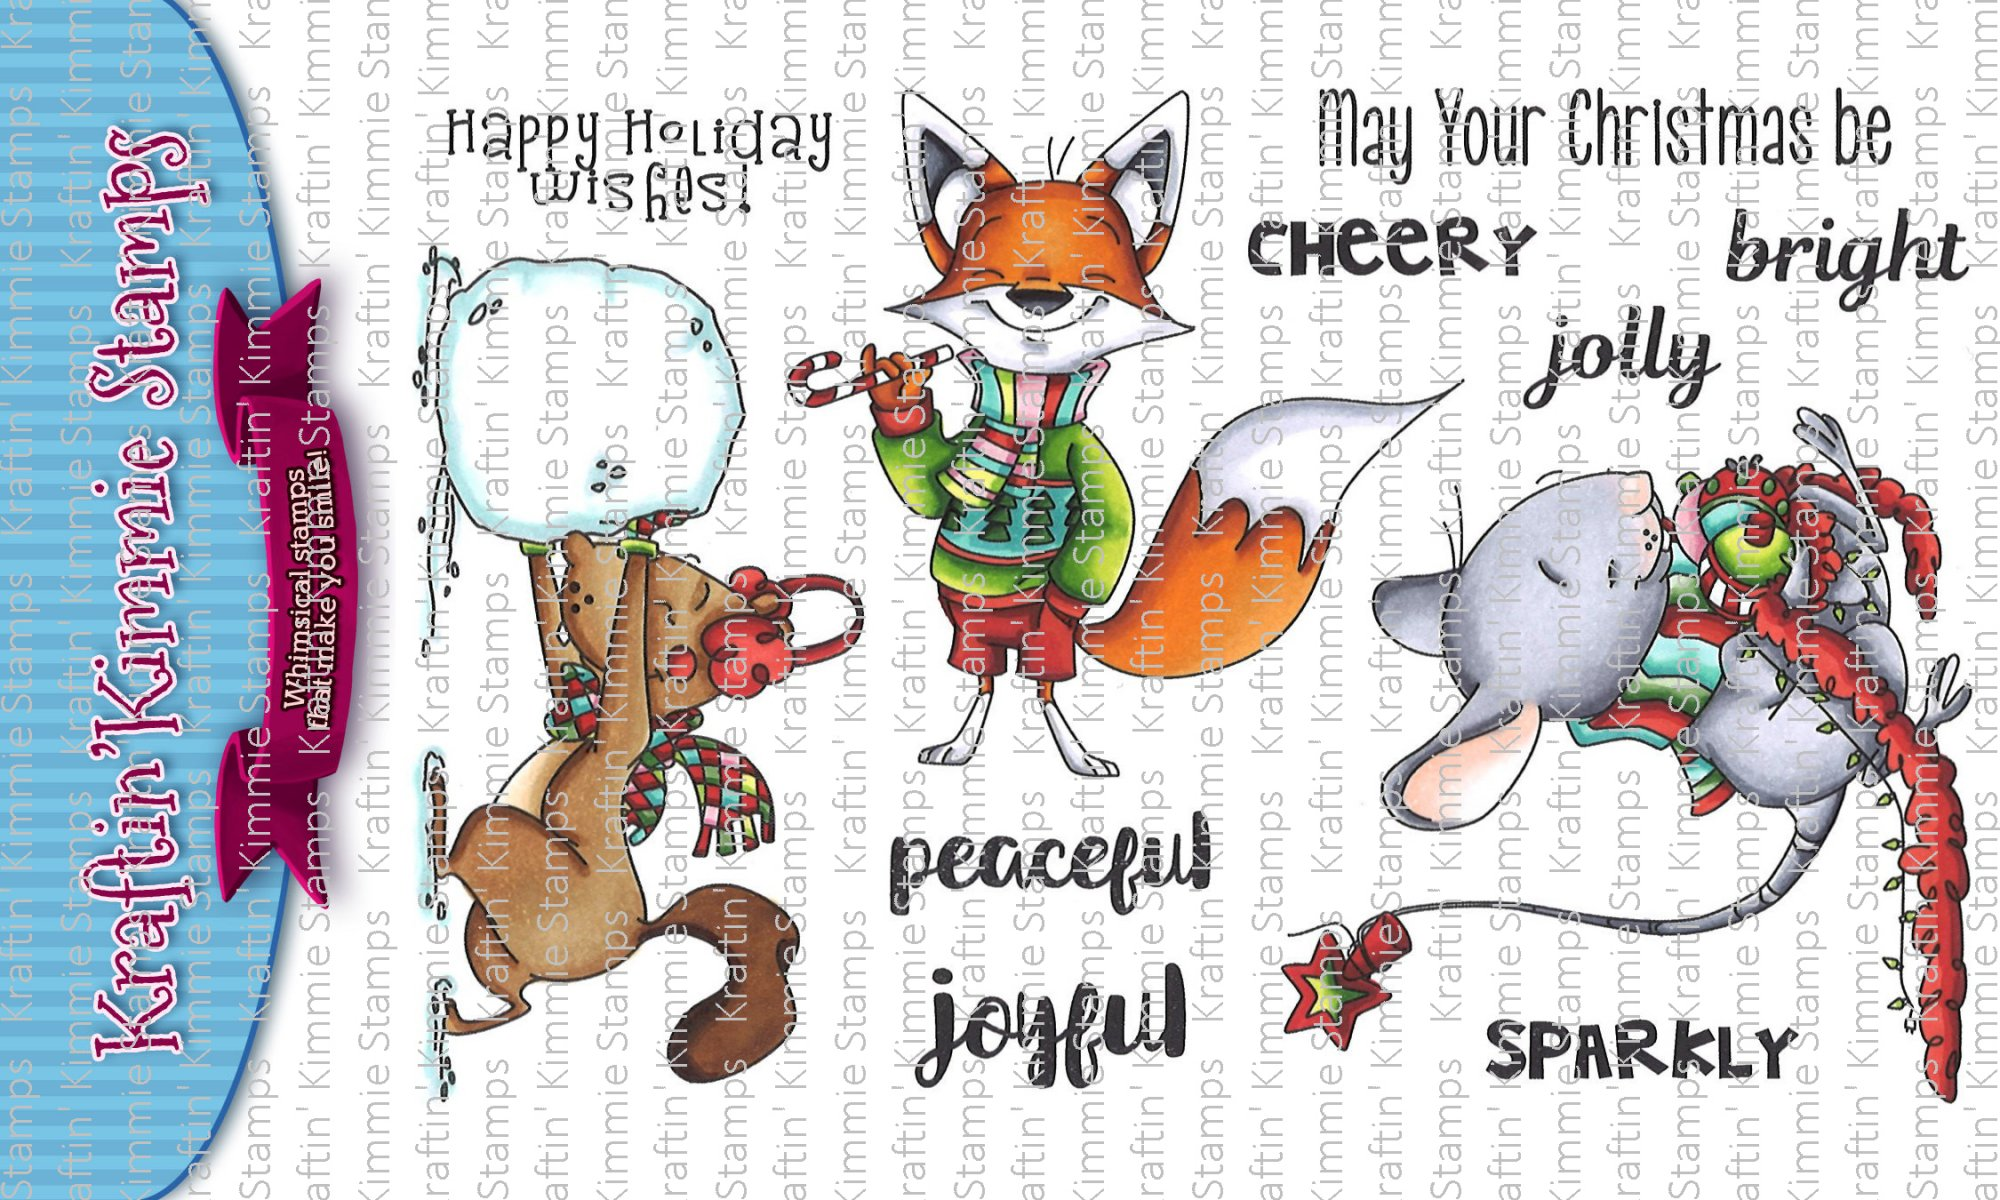 Kraftin' Kimmie - Stamps - Furry Holiday Wishes